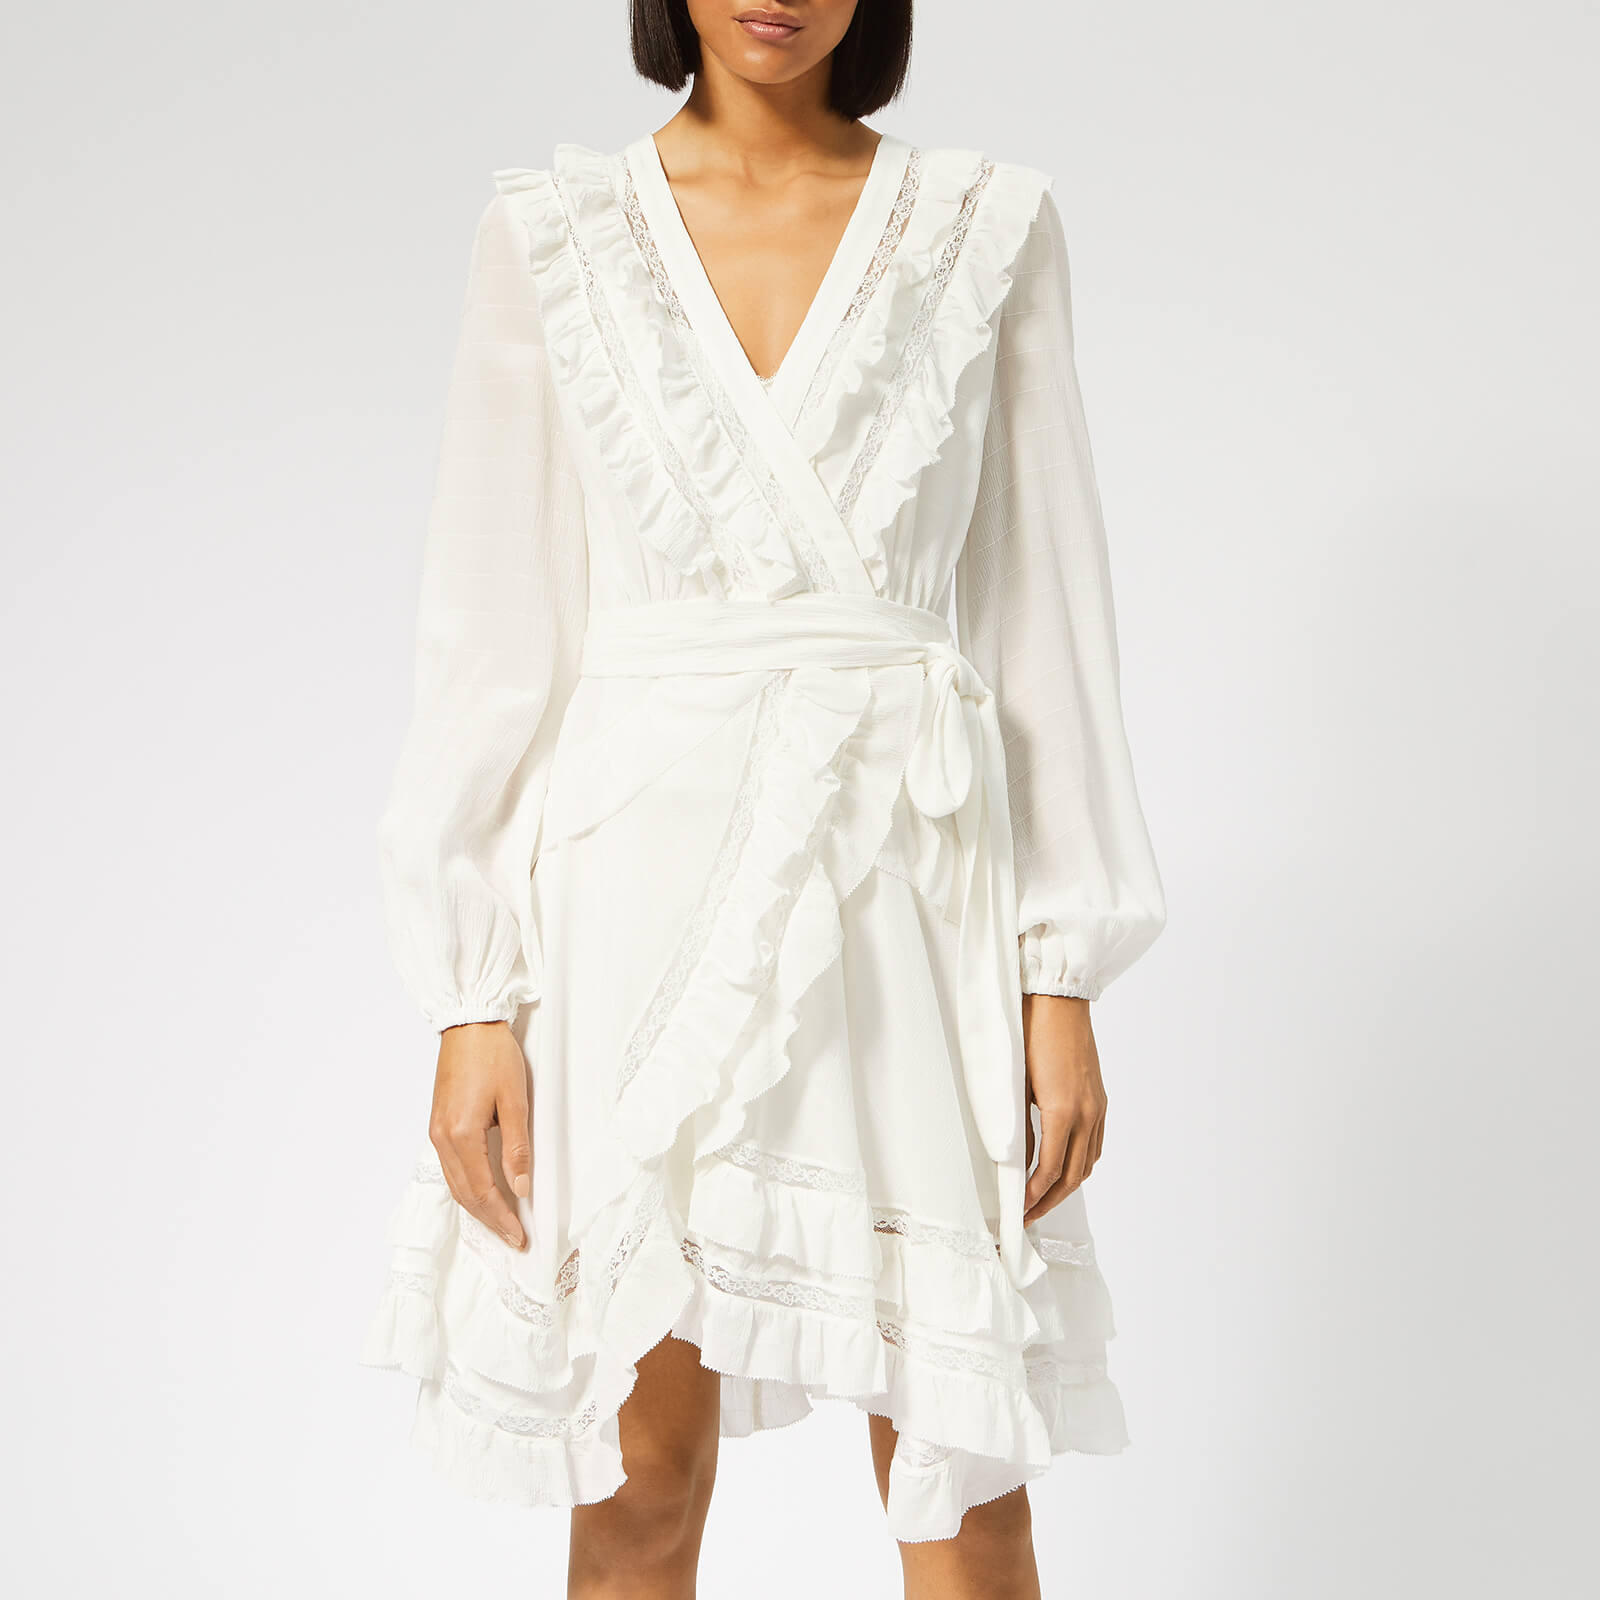 27f1b73abbca Zimmermann Women's Moncur Frill Wrap Short Dress - Pearl - Free UK Delivery  over £50